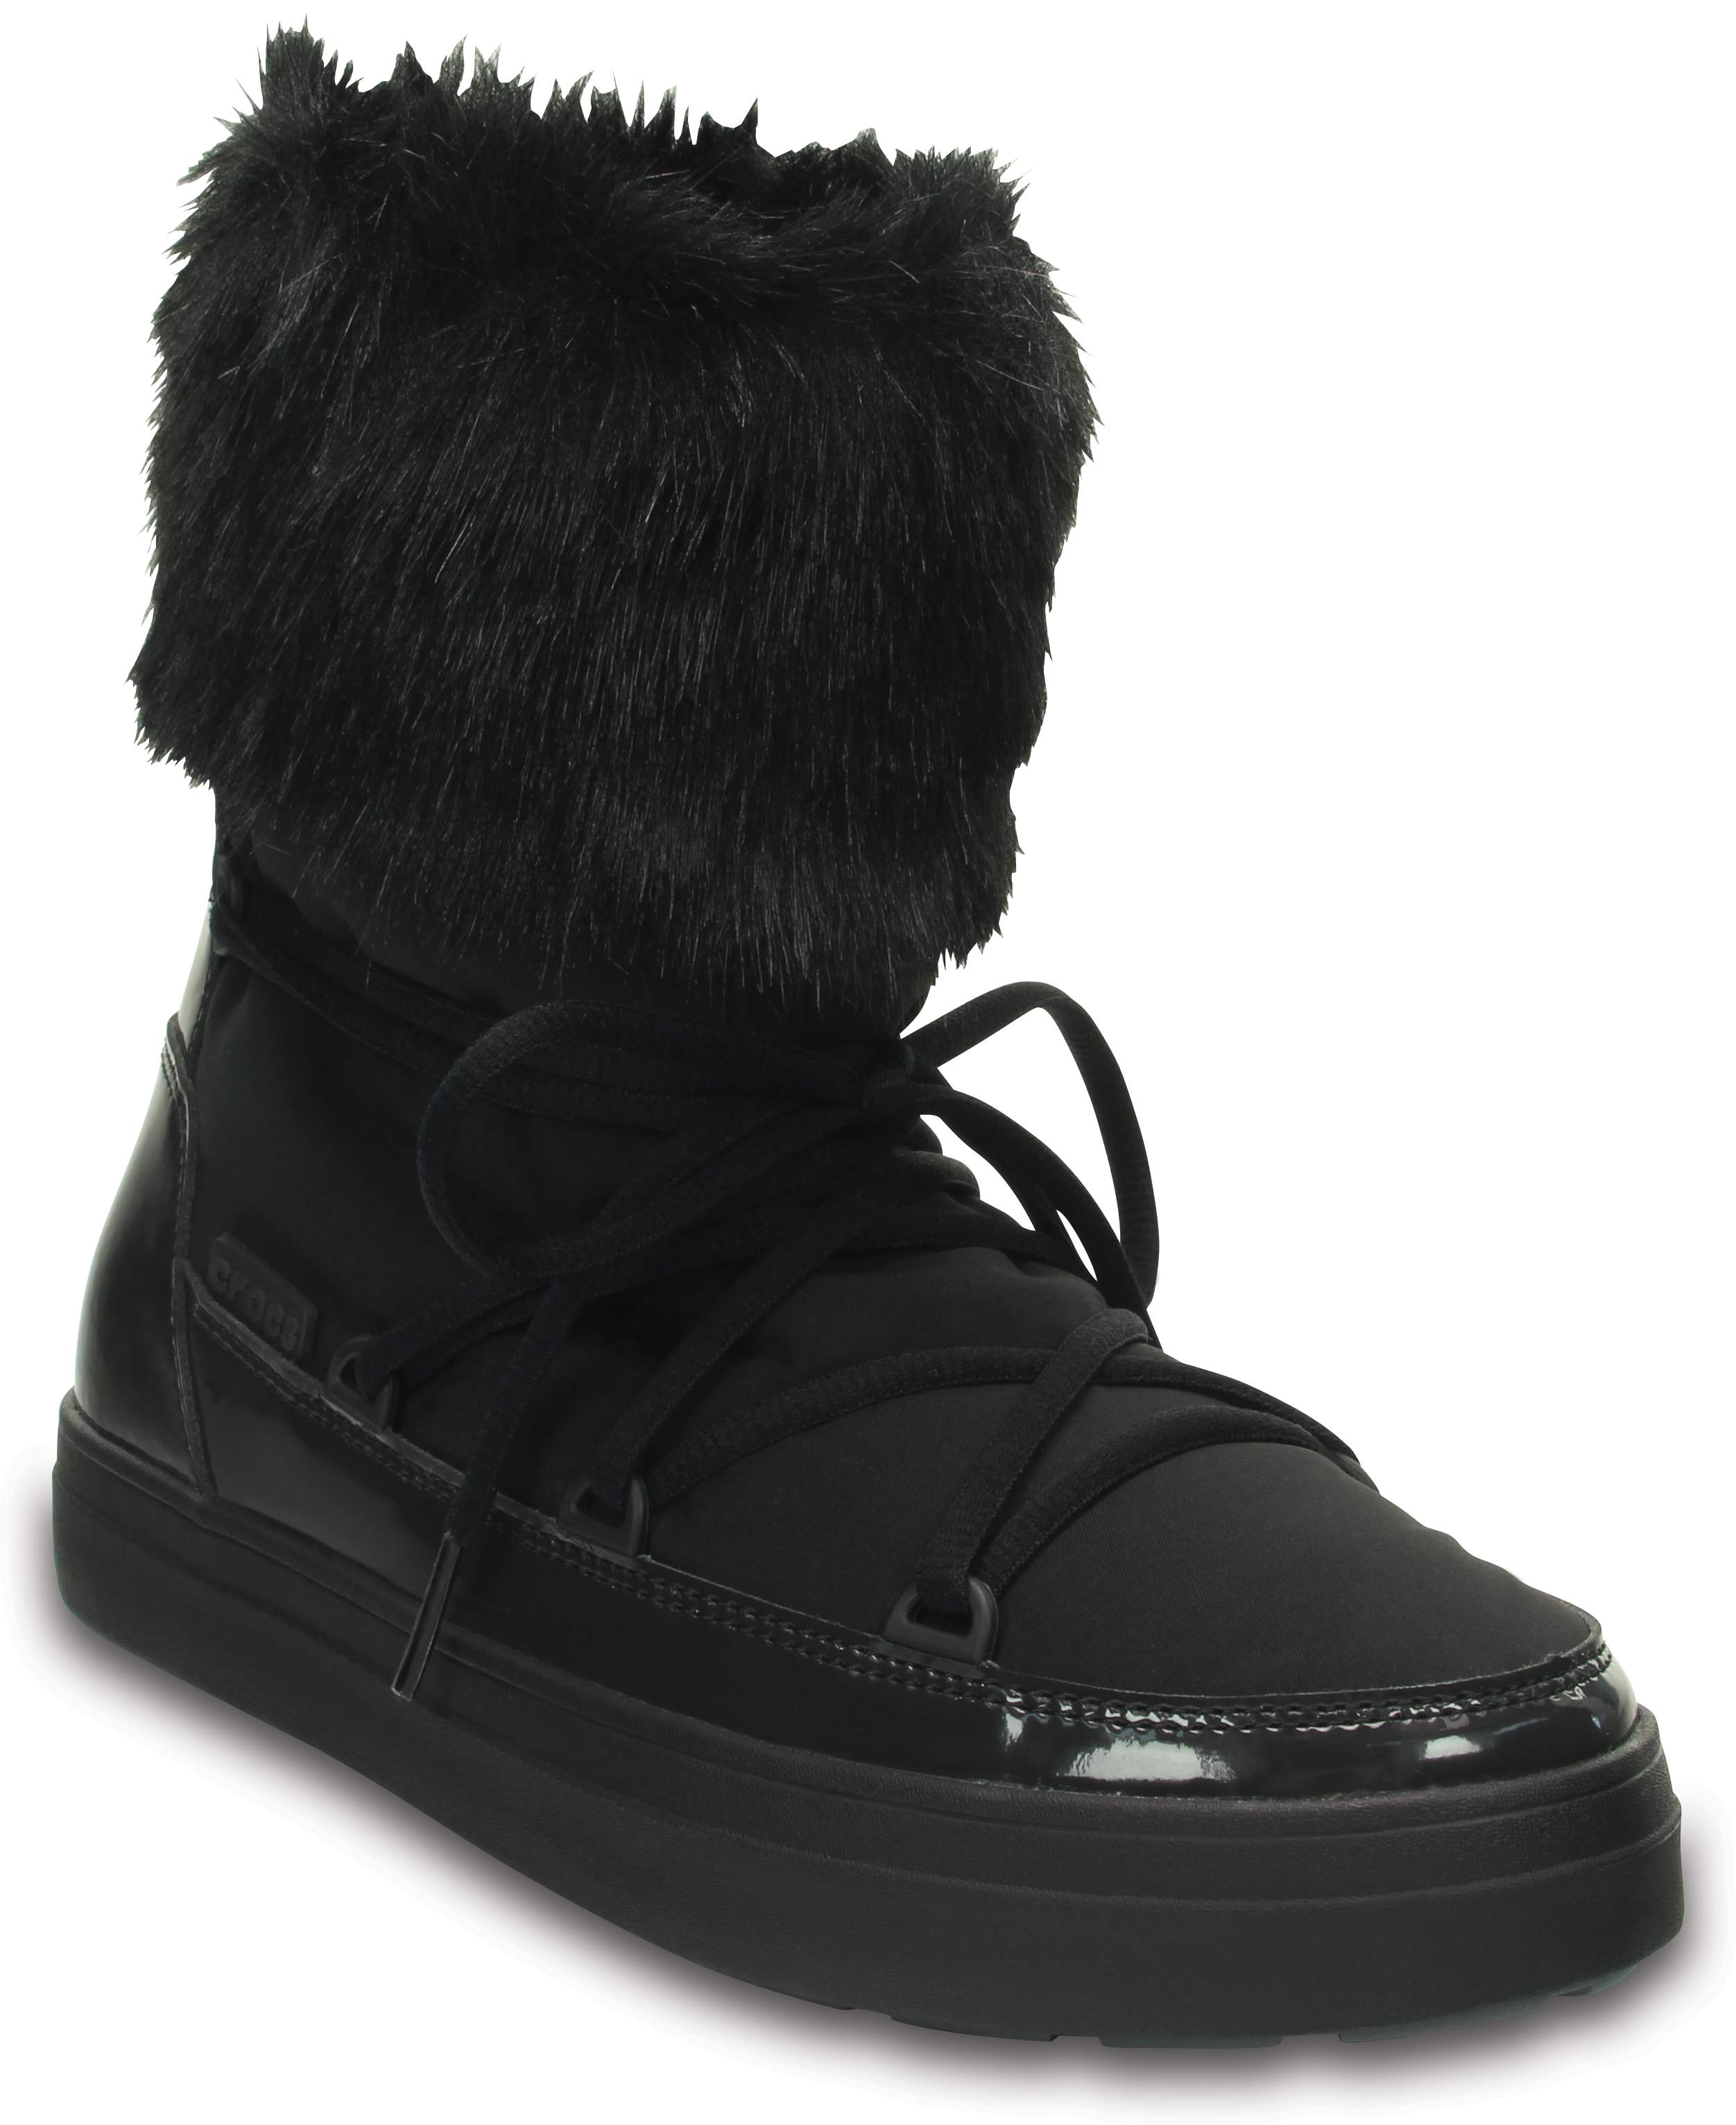 Crocs Lodgepoint Lace Boot W Noir